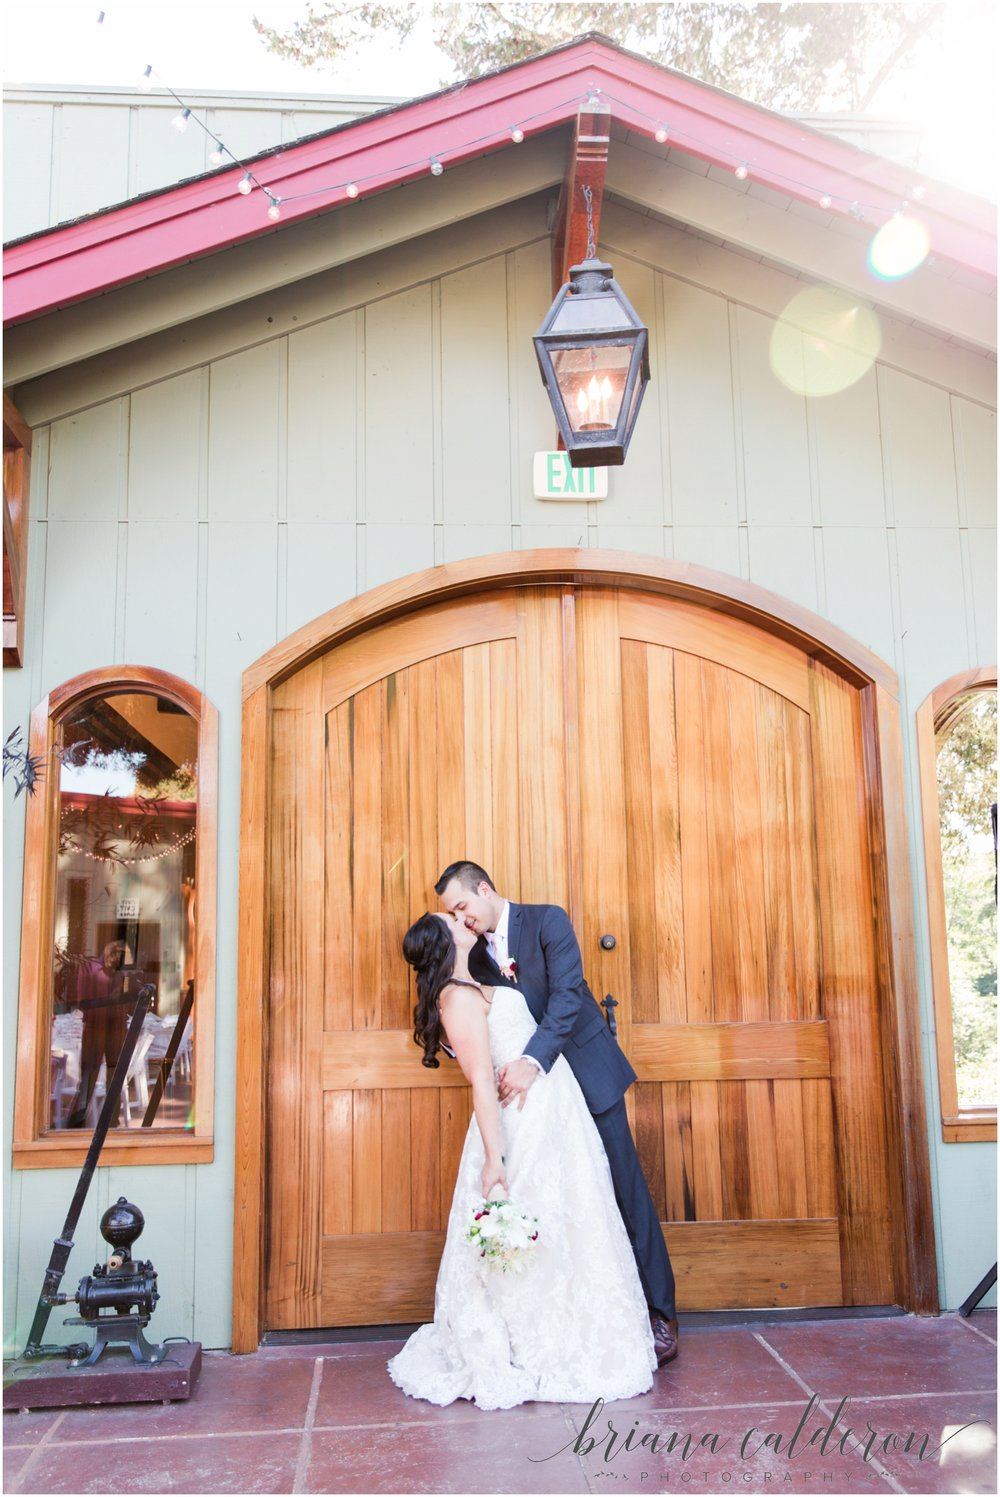 Bargetto Winery Wedding photos by Briana Calderon Photography_0934.jpg